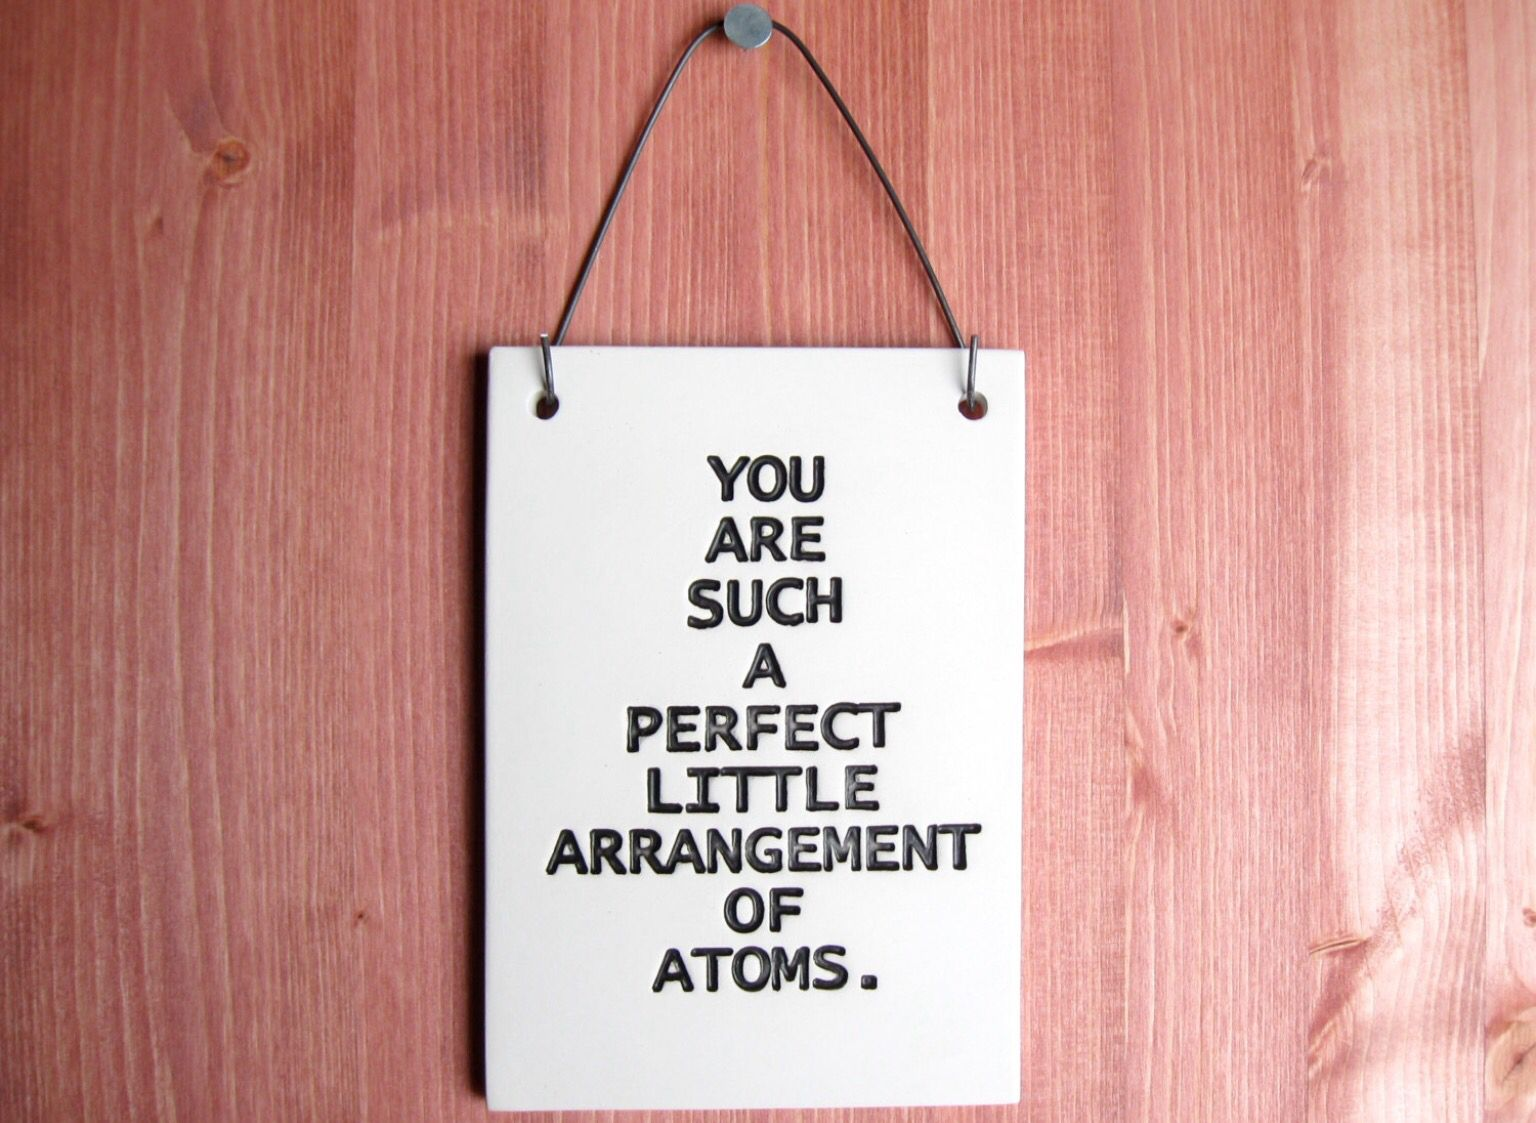 You Are Such A Perfect Arrangement Atoms Sign 268 Ceramic Wall Art Plaque Print Love Quote Home Decor Nerdy Geeky Science Geekery Poetry